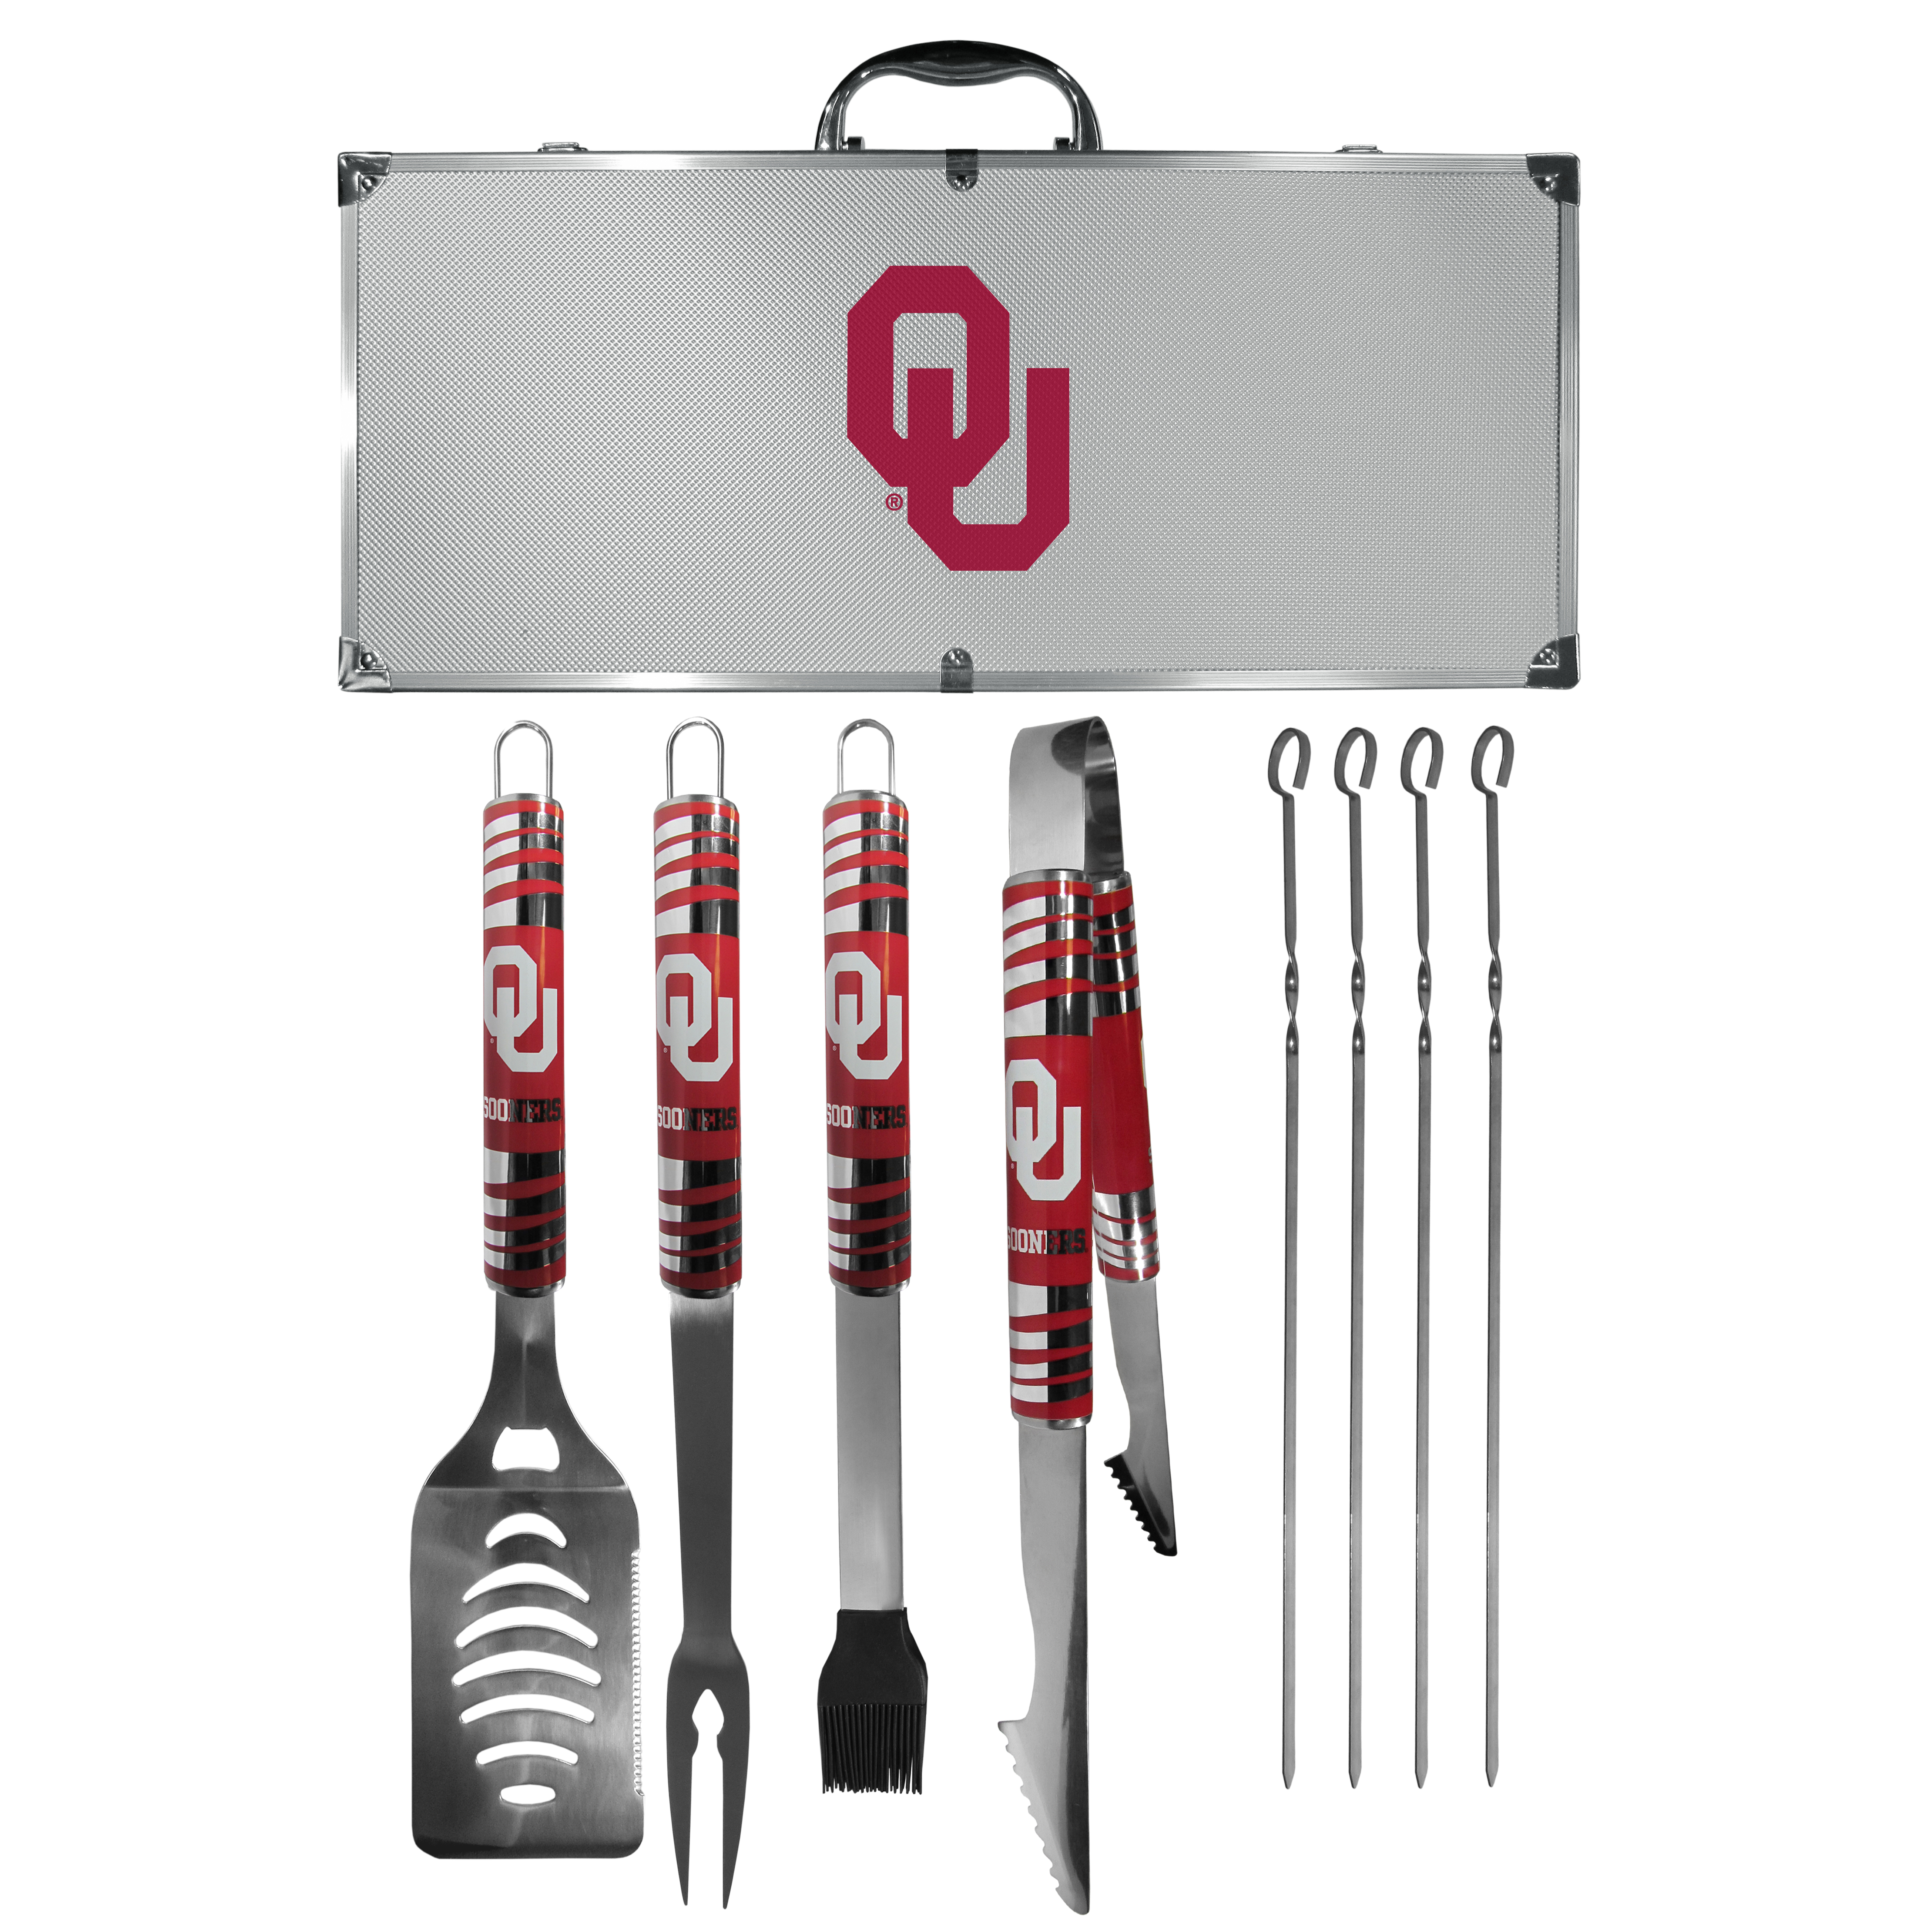 Oklahoma Sooners 8 pc Tailgater BBQ Set - This is the ultimate Oklahoma Sooners tailgate accessory! The high quality, 420 grade stainless steel tools are durable and well-made enough to make even the pickiest grill master smile. This complete grill accessory kit includes; 4 skewers, spatula with bottle opener and serrated knife edge, basting brush, tongs and a fork. The 18 inch metal carrying case is perfect for great outdoor use making grilling an ease while camping, tailgating or while having a game day party on your patio. The tools are 17 inches long and feature vivid team graphics. The metal case features a large team emblem with exceptional detail. This high-end men's gift is sure to be a hit as a present on Father's Day or Christmas.